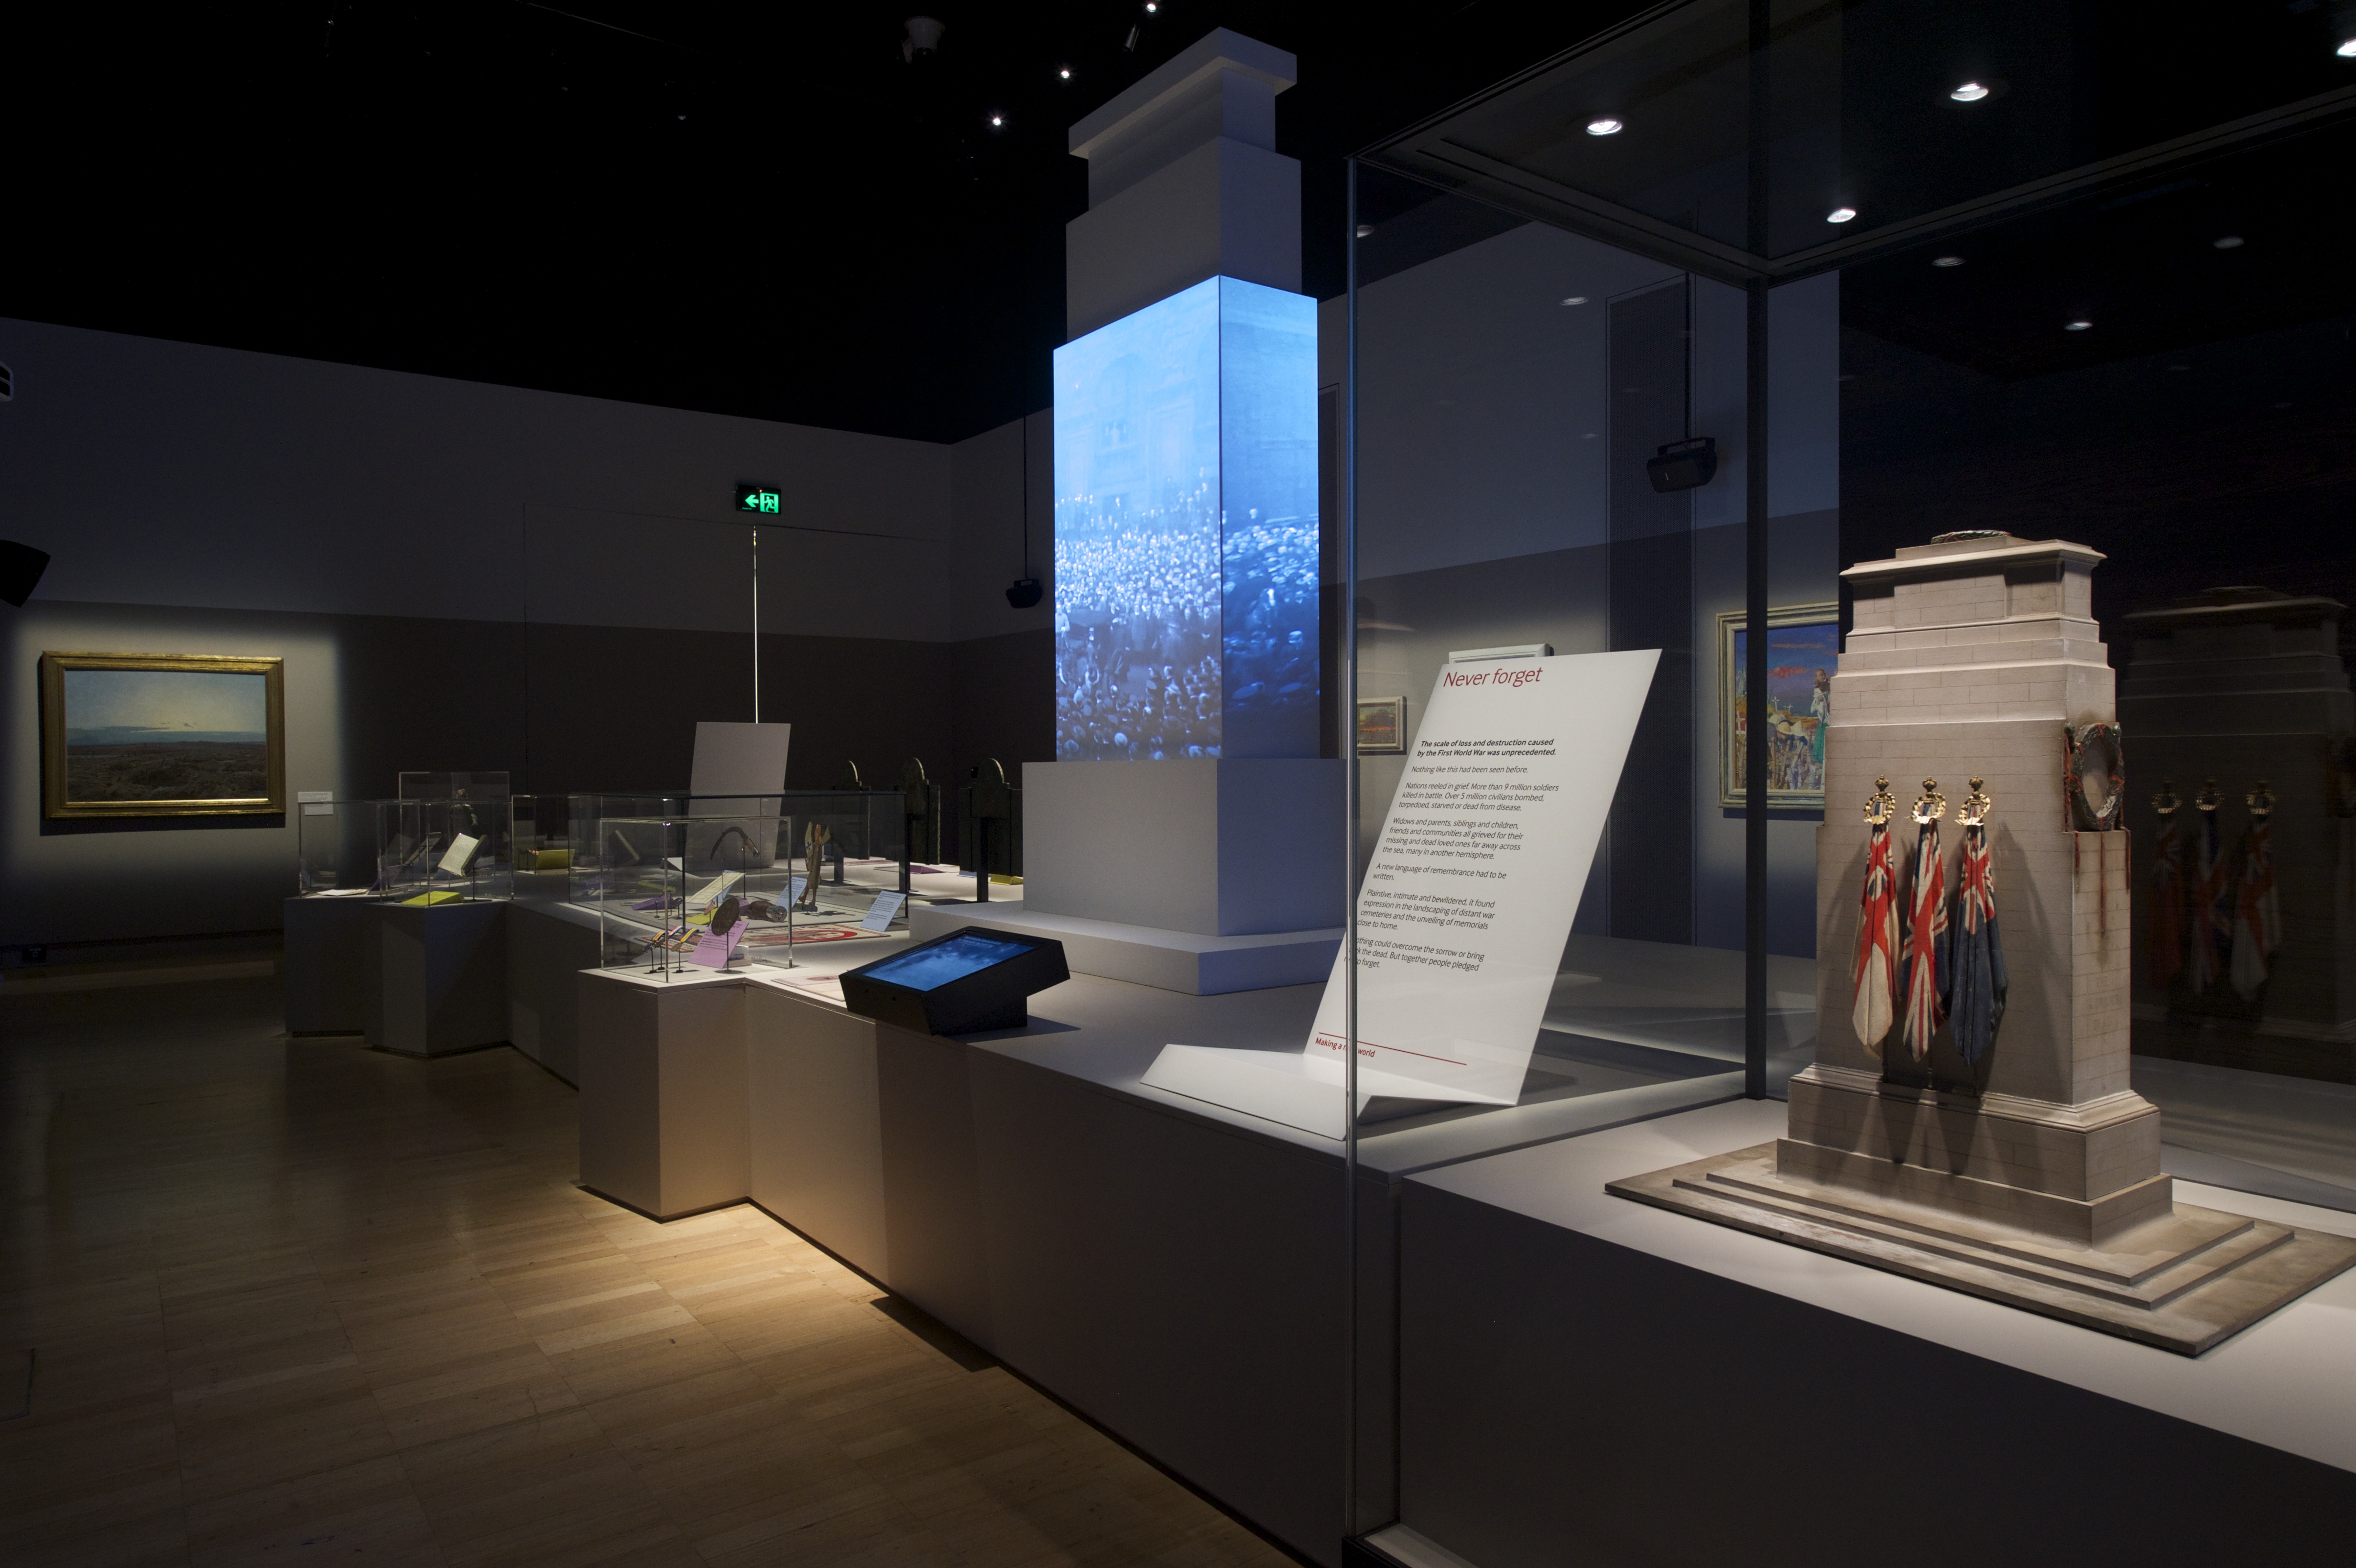 The Making A New World `story area;. Image courtesy WW1 Centenary Exhibition, Melbourne Museum